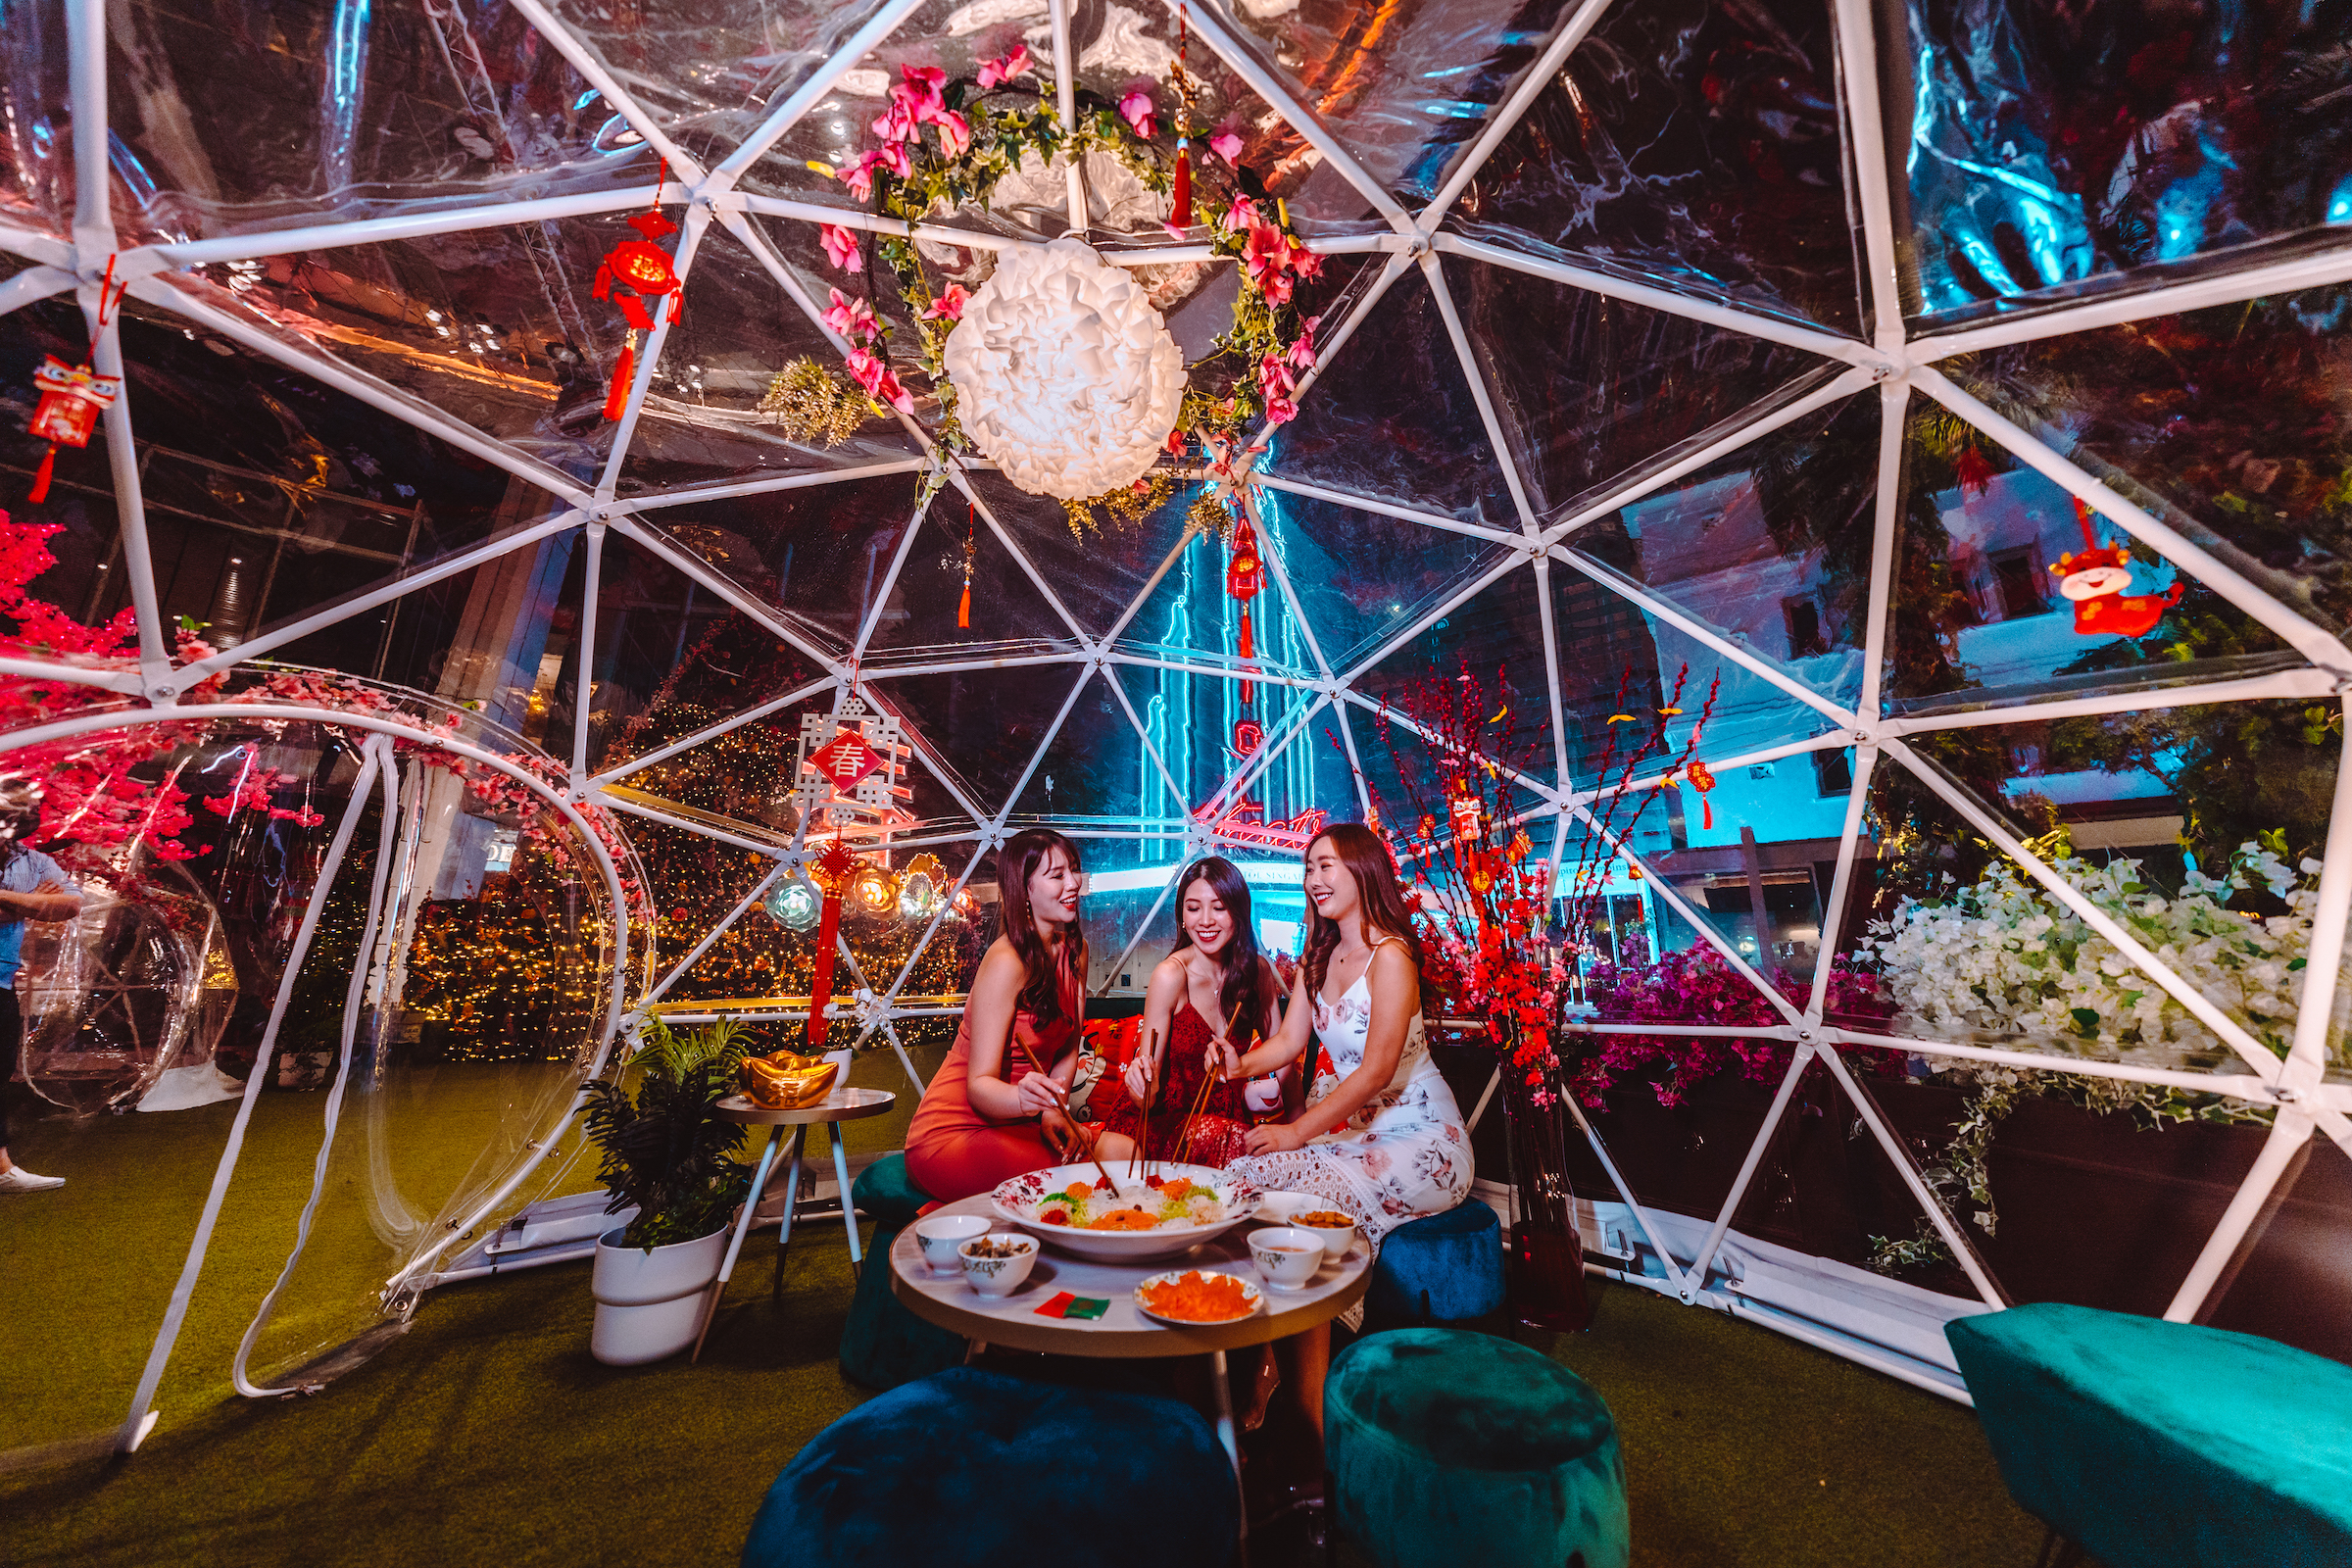 These outdoor domes at Capitol Singapore have been given a Lunar New Year makeover